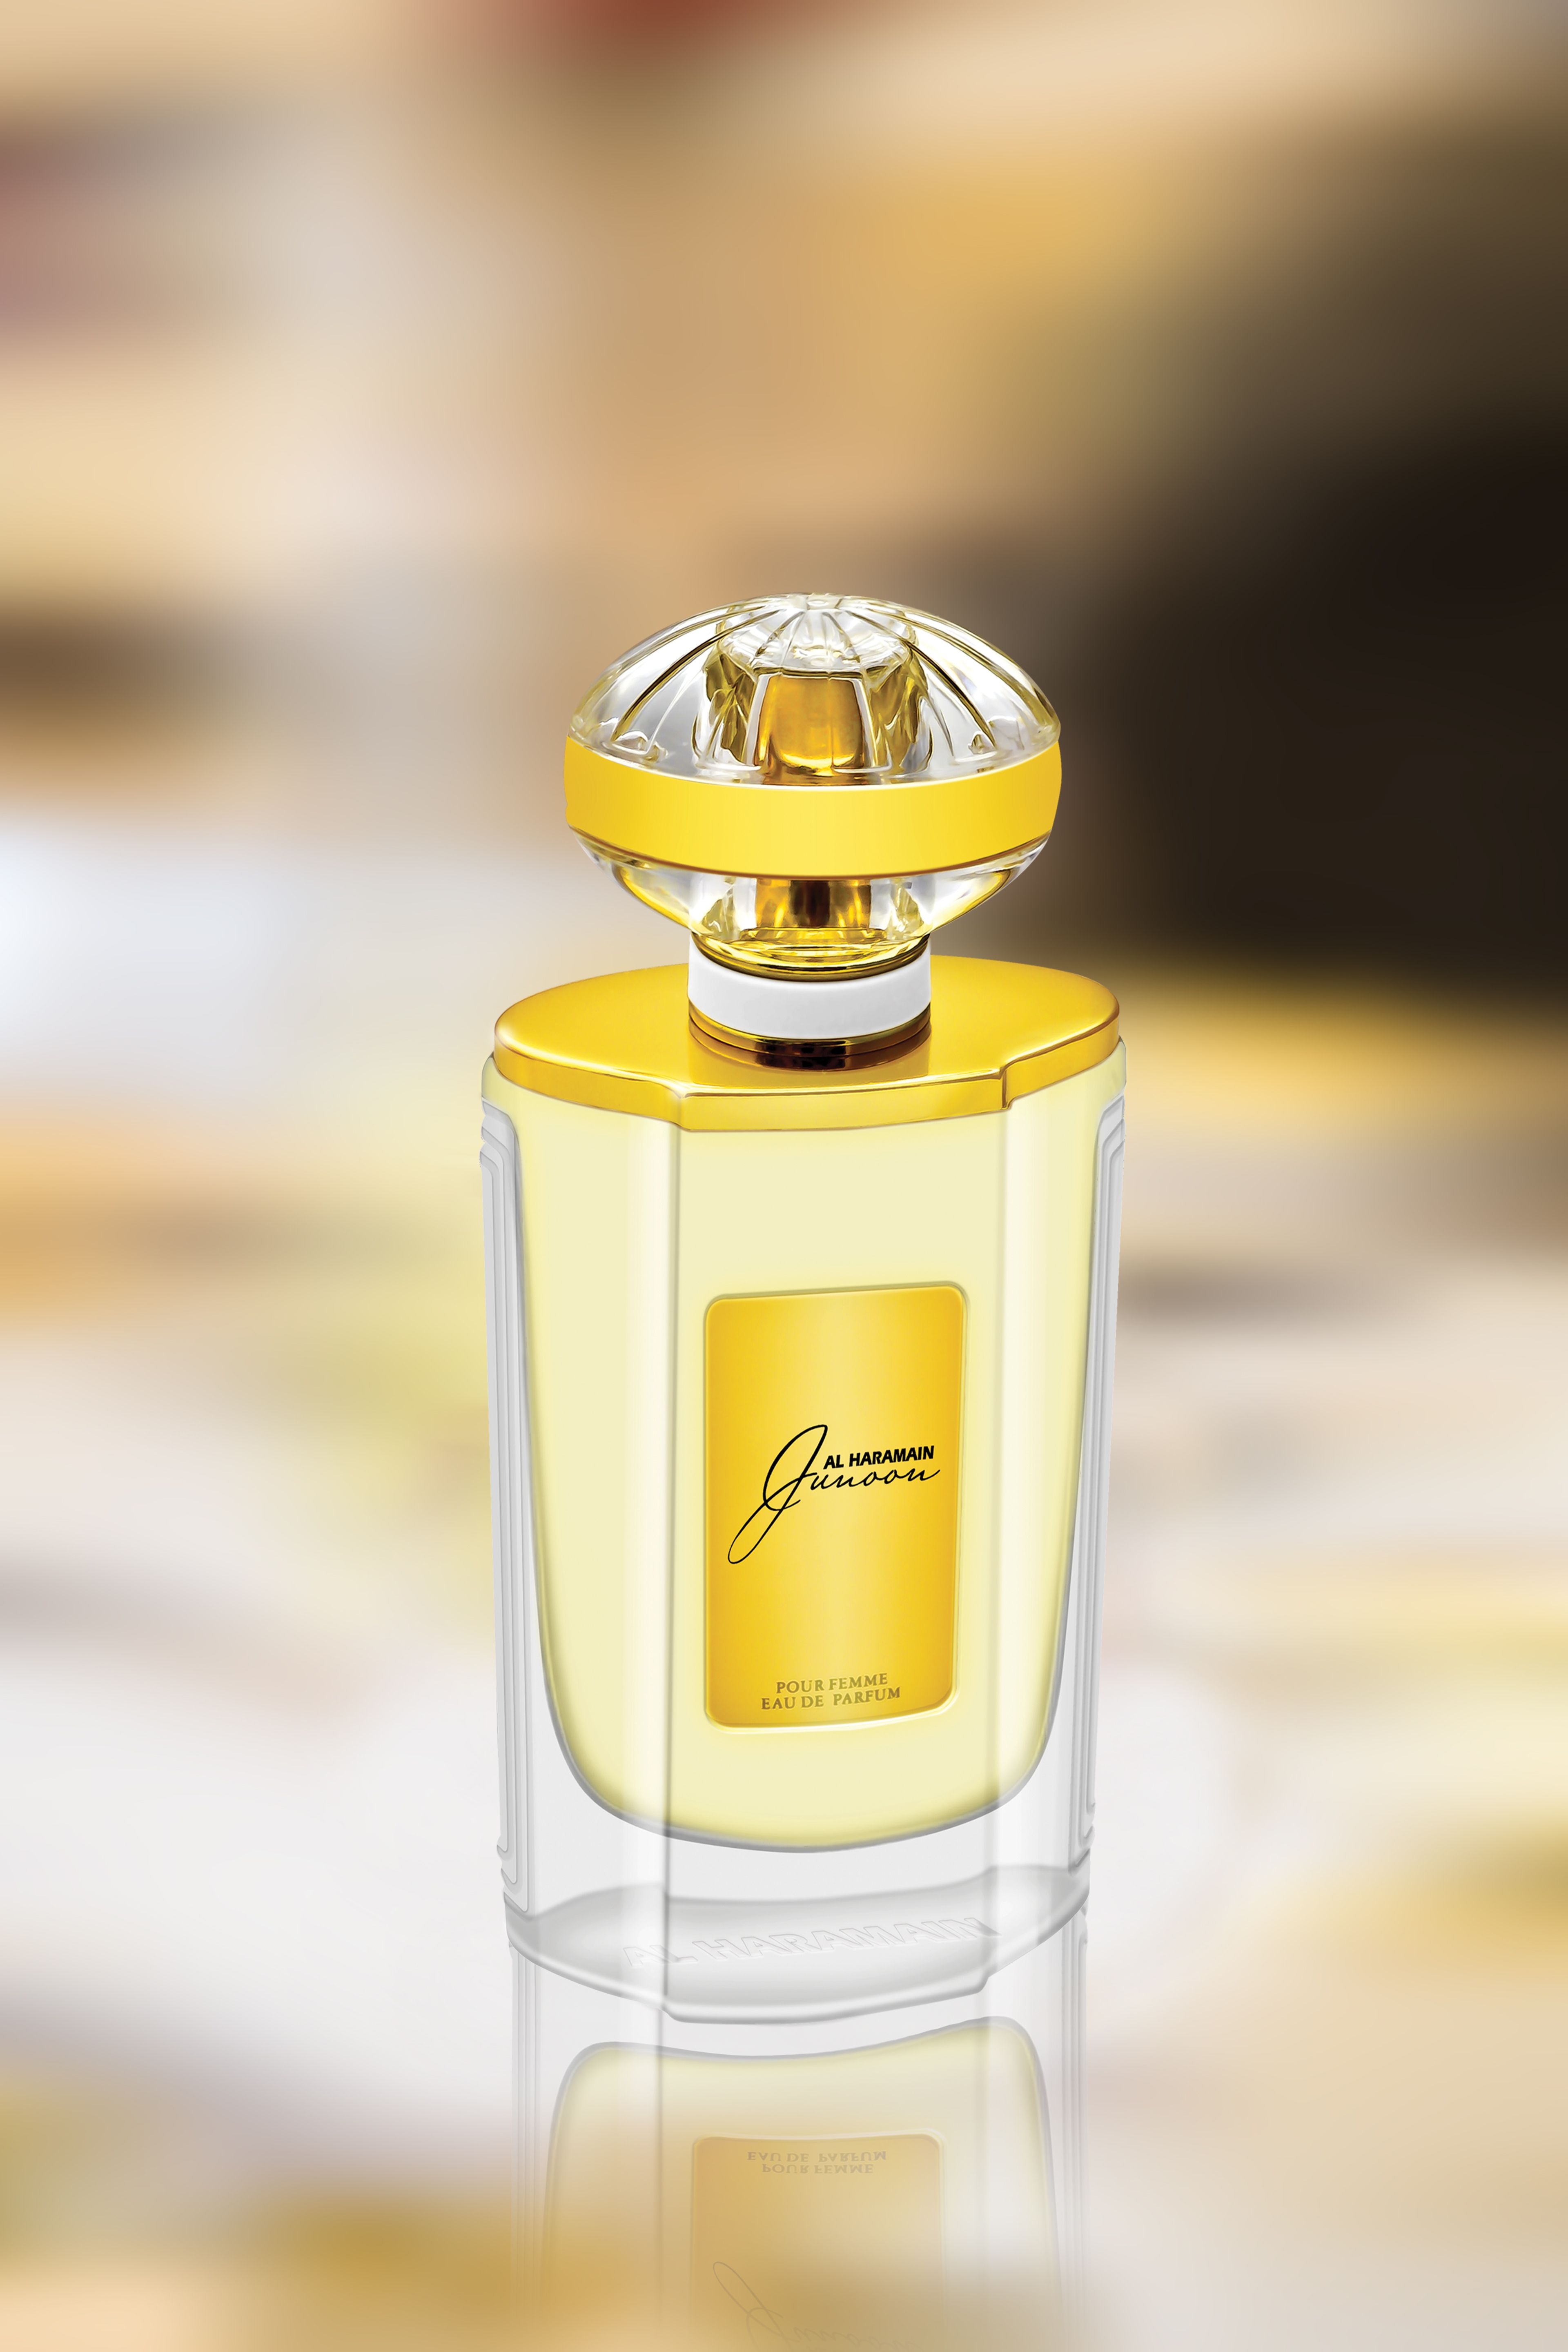 Al Haramain Junoon Eau De Parfum 100ml Bottle Taken On A Display Hermes 24 Faubourg Woman Edp 100 Ml Stand At Perfumes First Retail Store In The United Kingdom Green Street